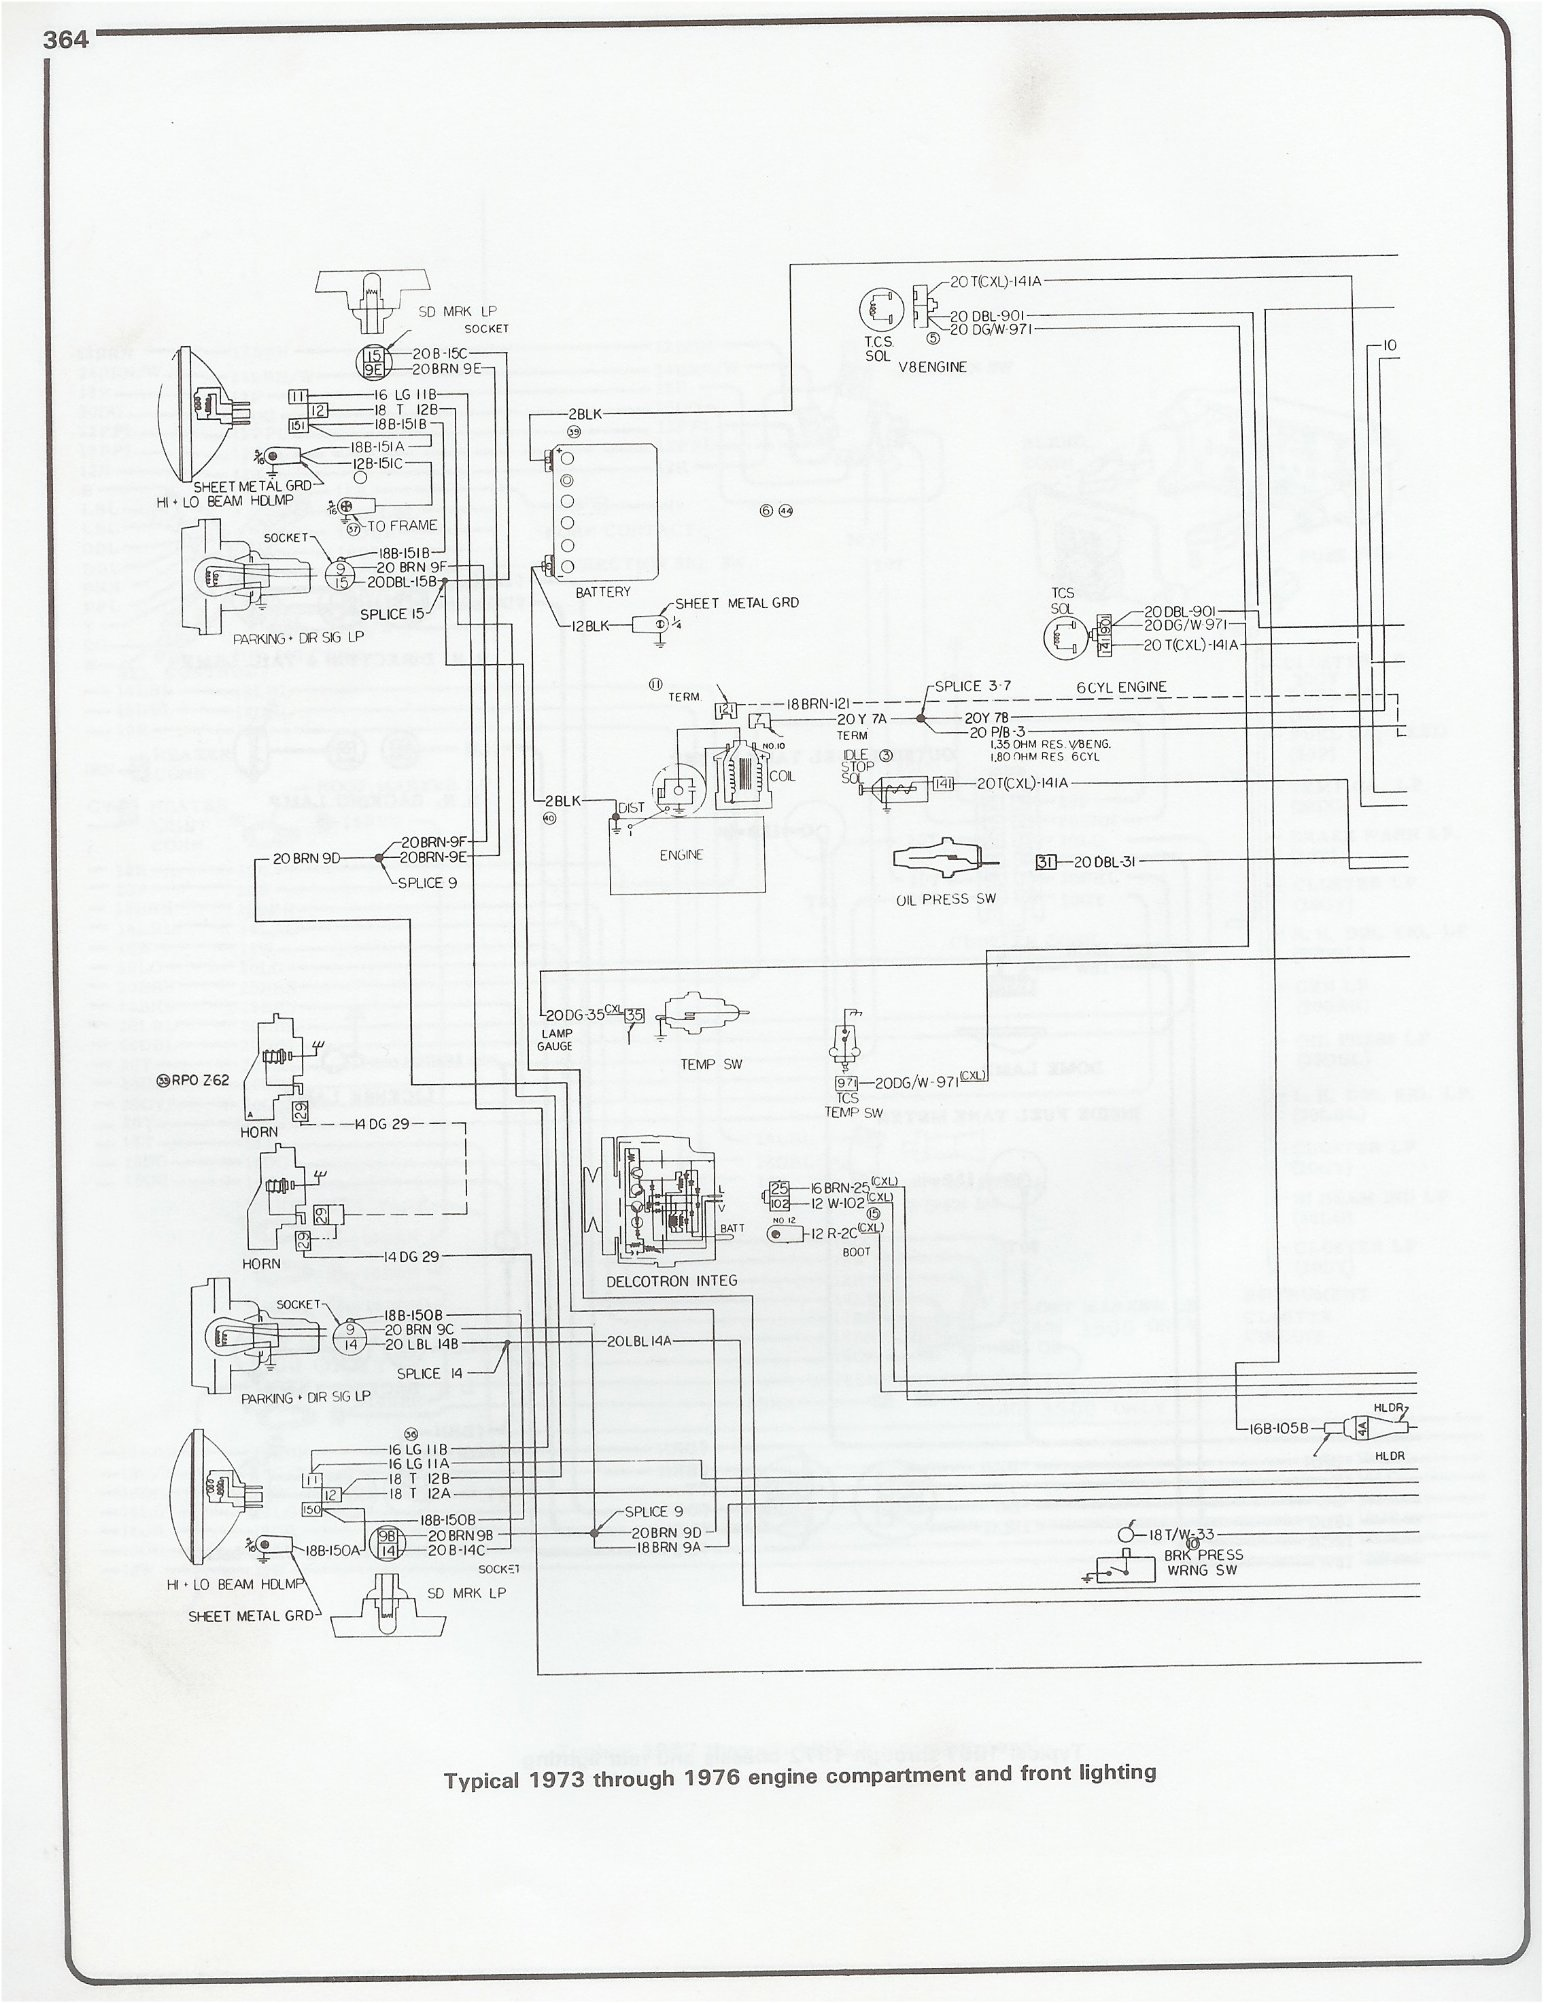 73 76_eng_frt_light electrical diagrams chevy only page 2 truck forum 1983 chevy c10 fuse box diagram at creativeand.co